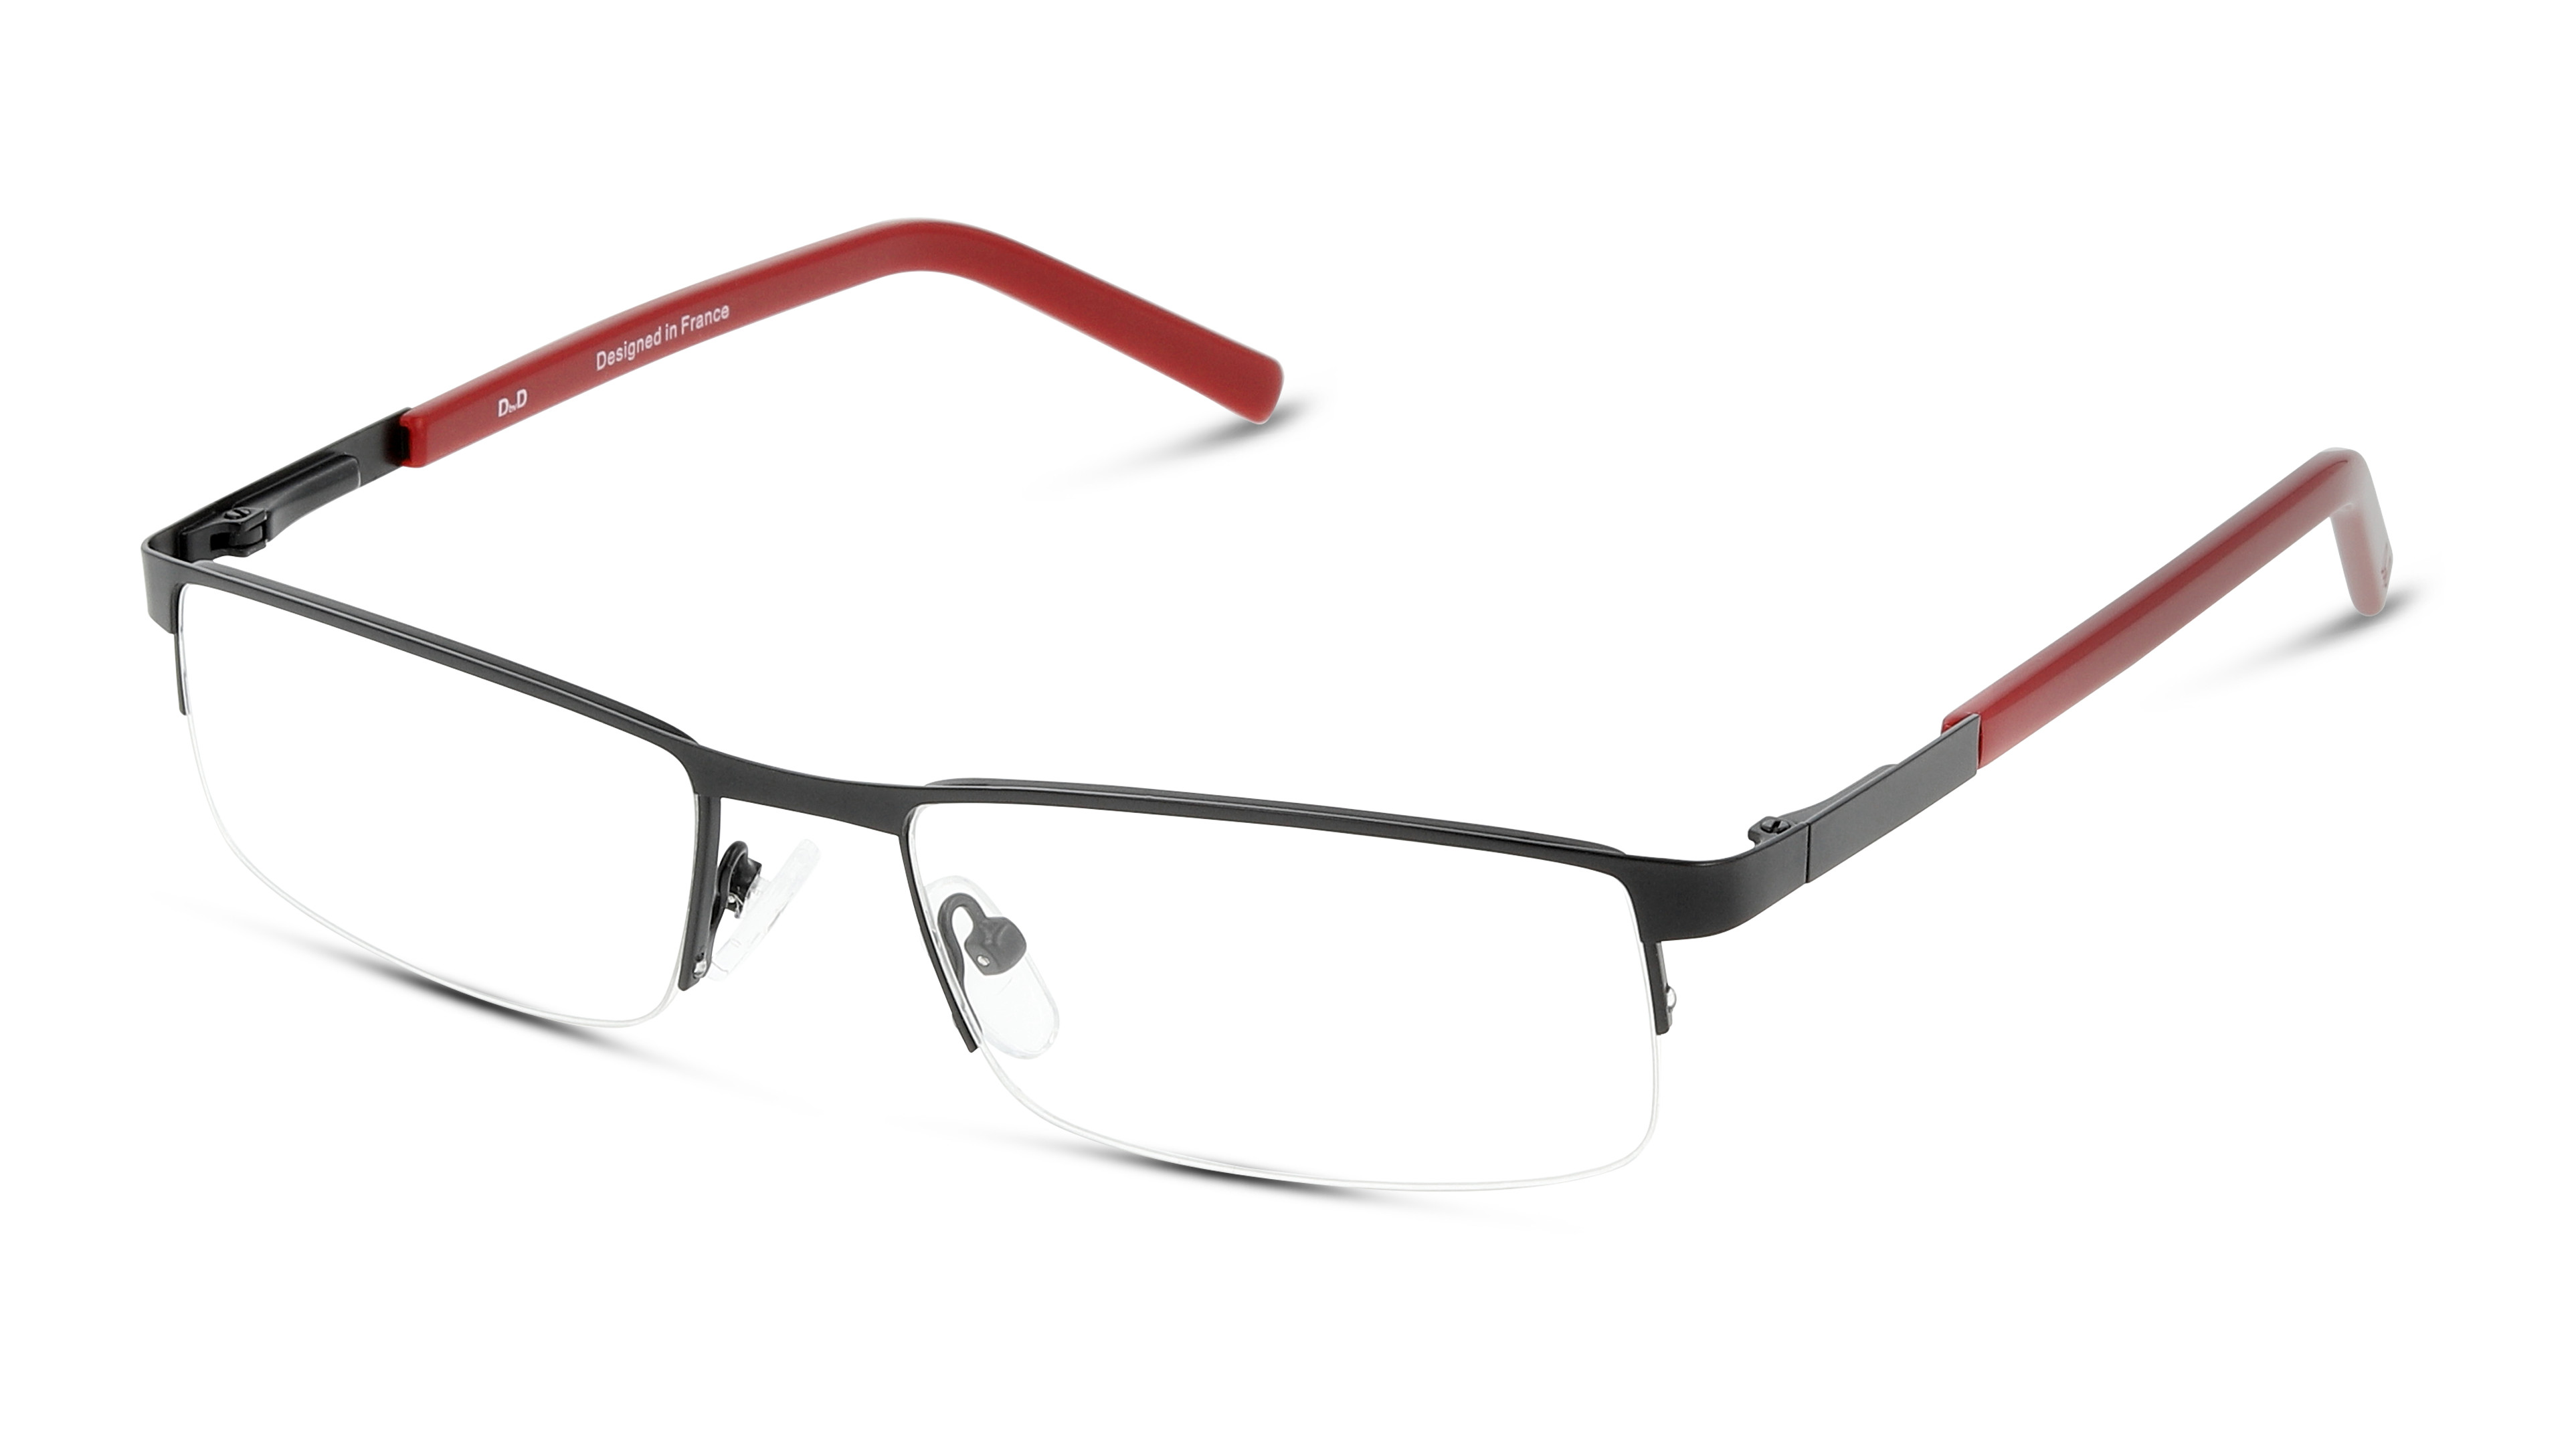 8719154731679-angle-03-dbyd-dbom0013-picture-black-red